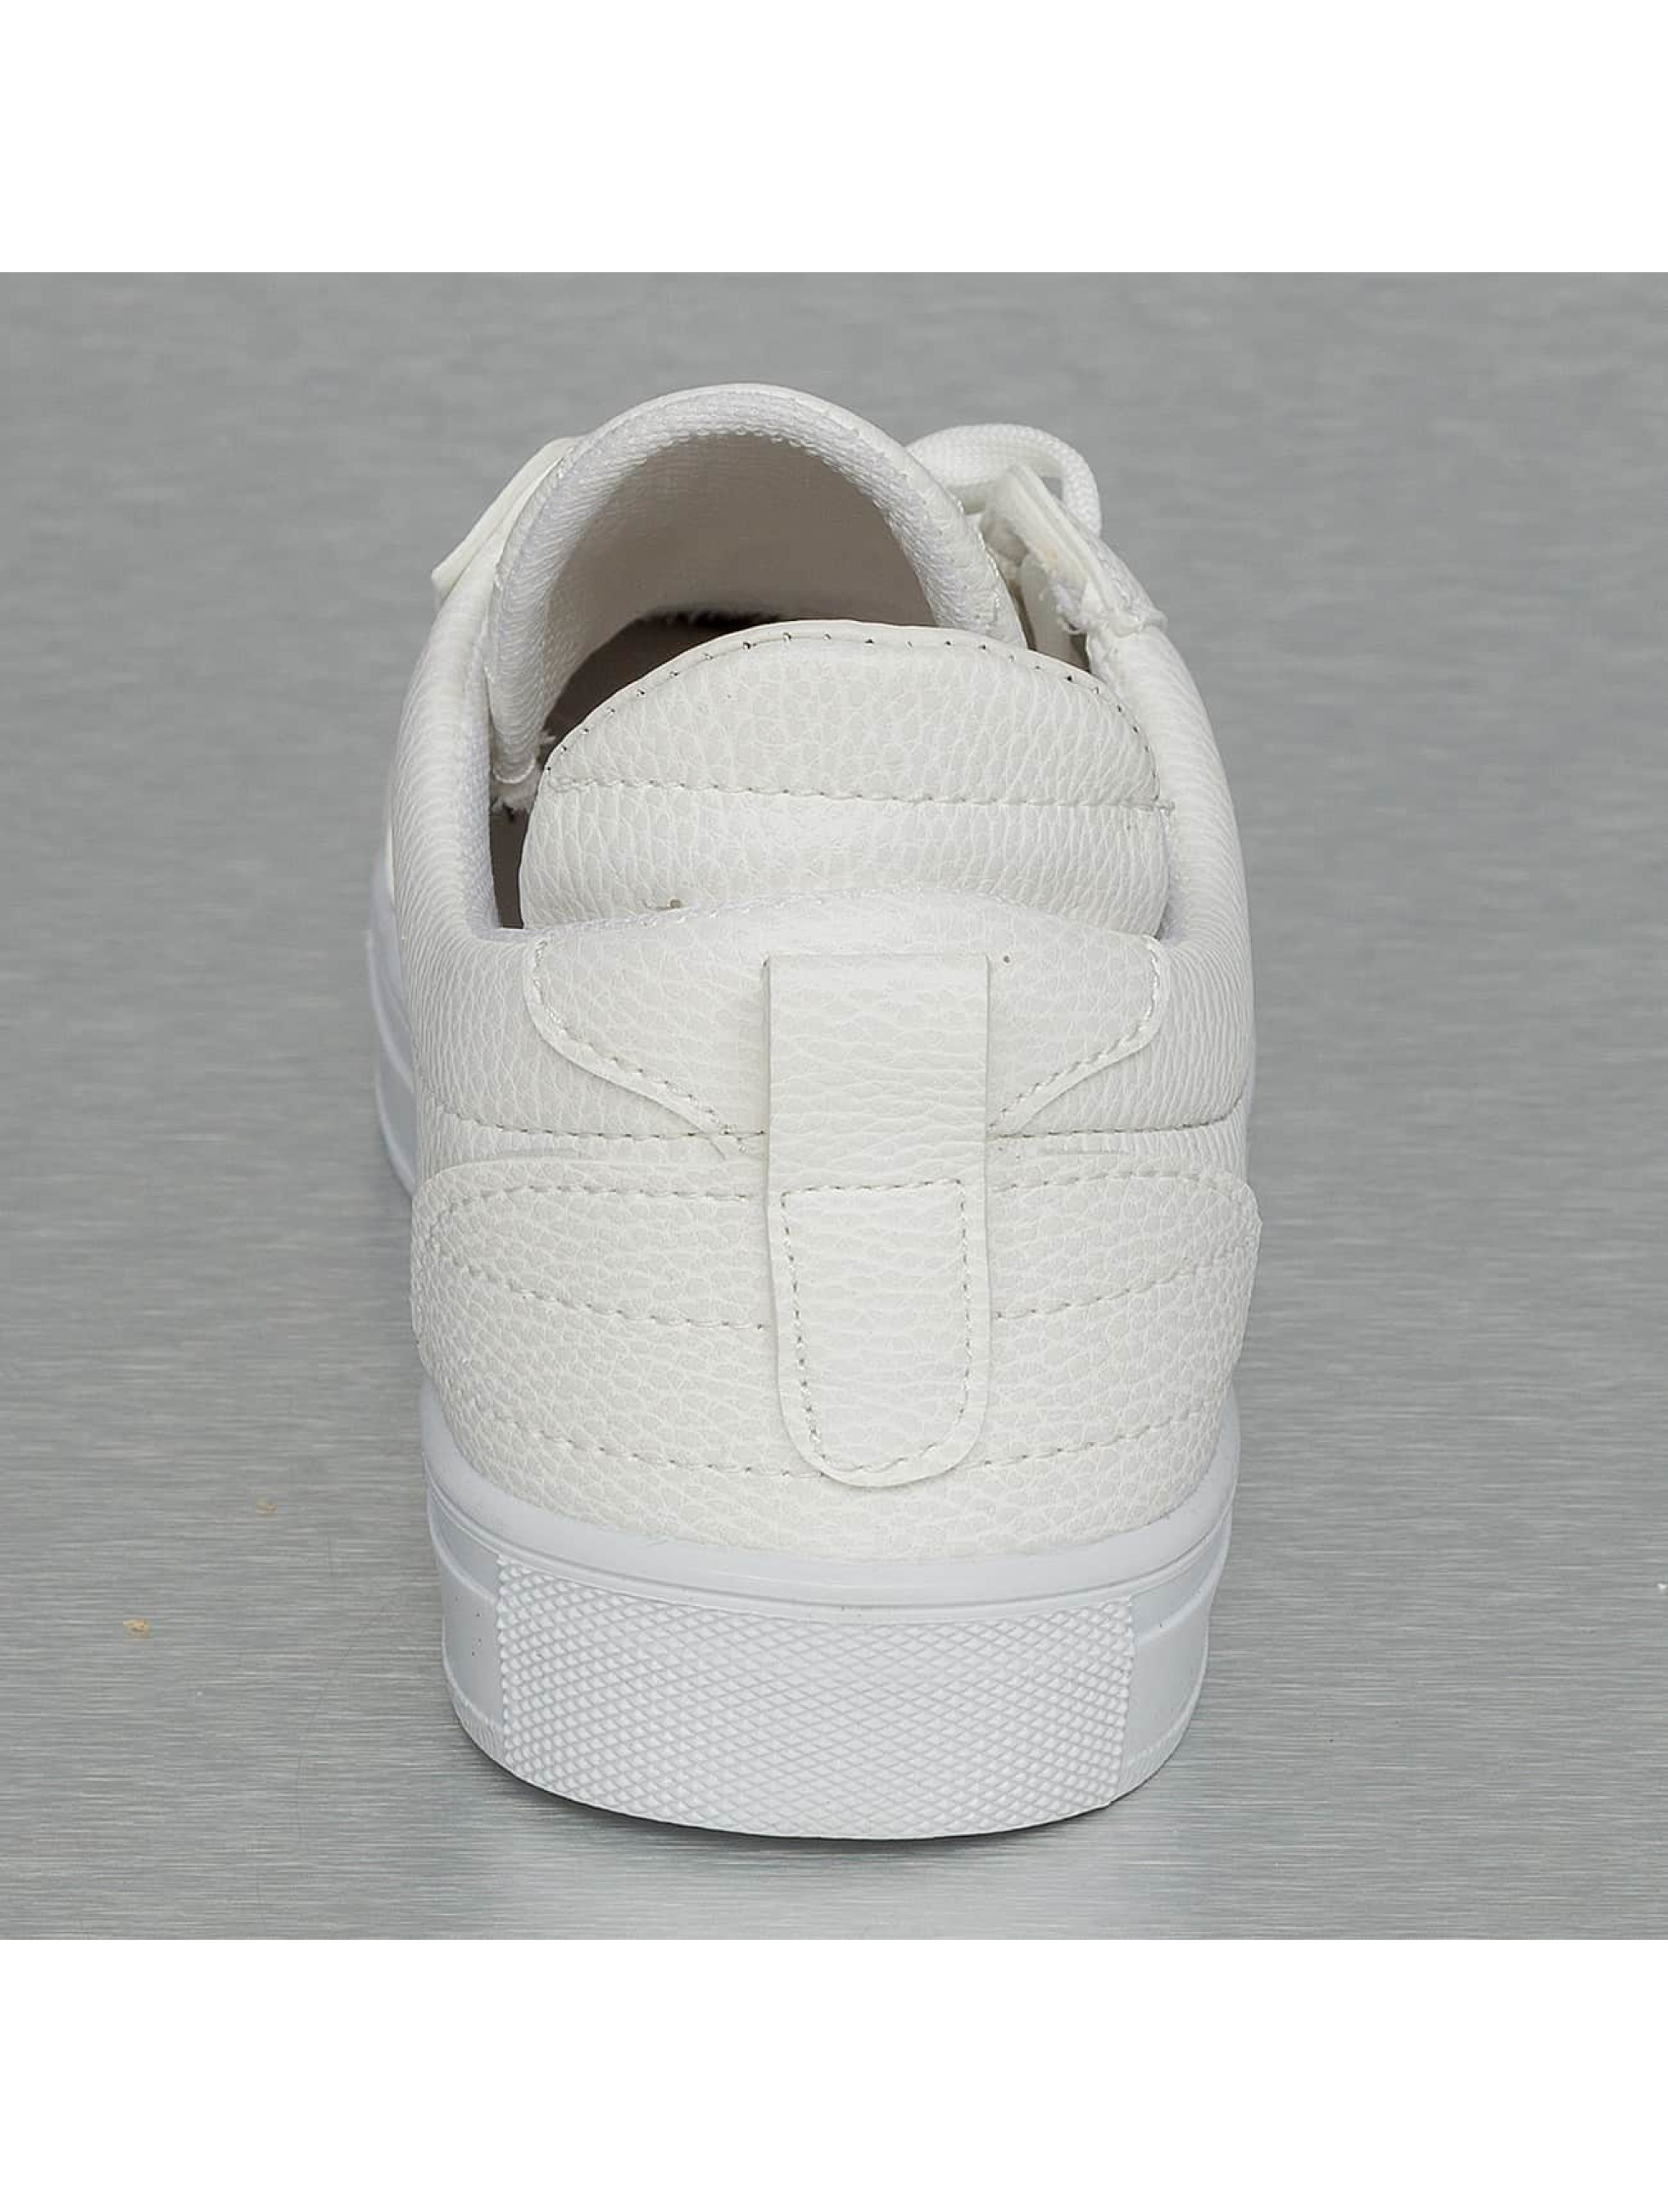 New York Style sneaker Low Top wit